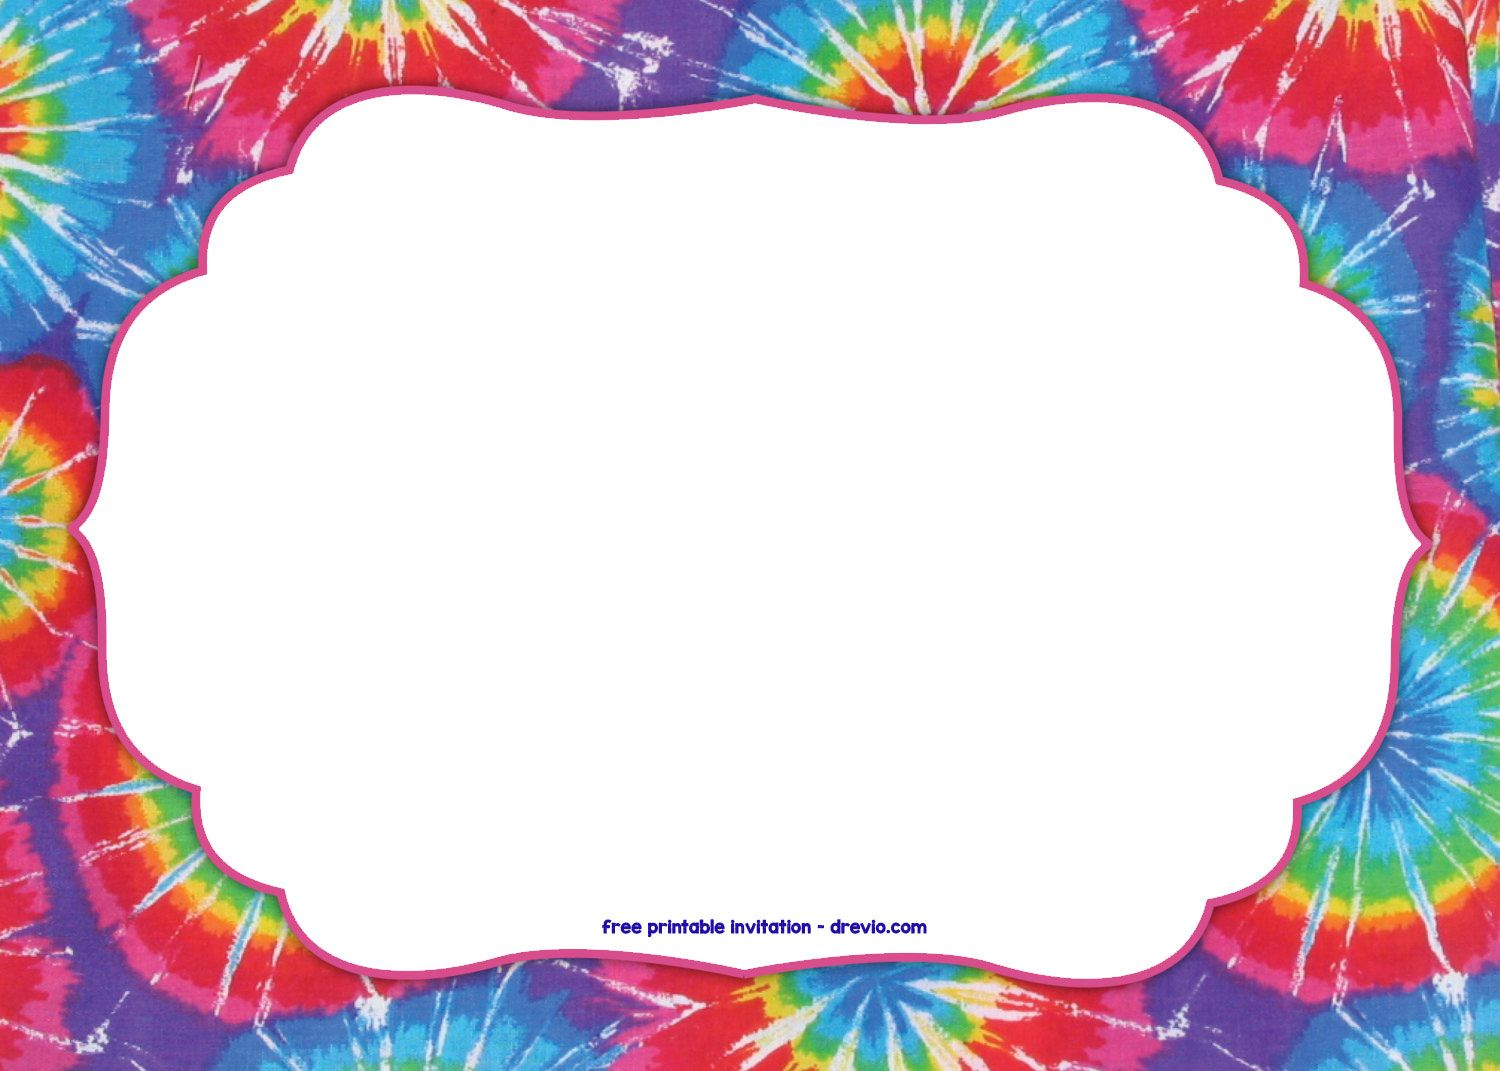 Tie dye birthday ideas & clipart on pinterest png royalty free download FREE Tie Dye Invitation... | Free Printable Birthday ... png royalty free download